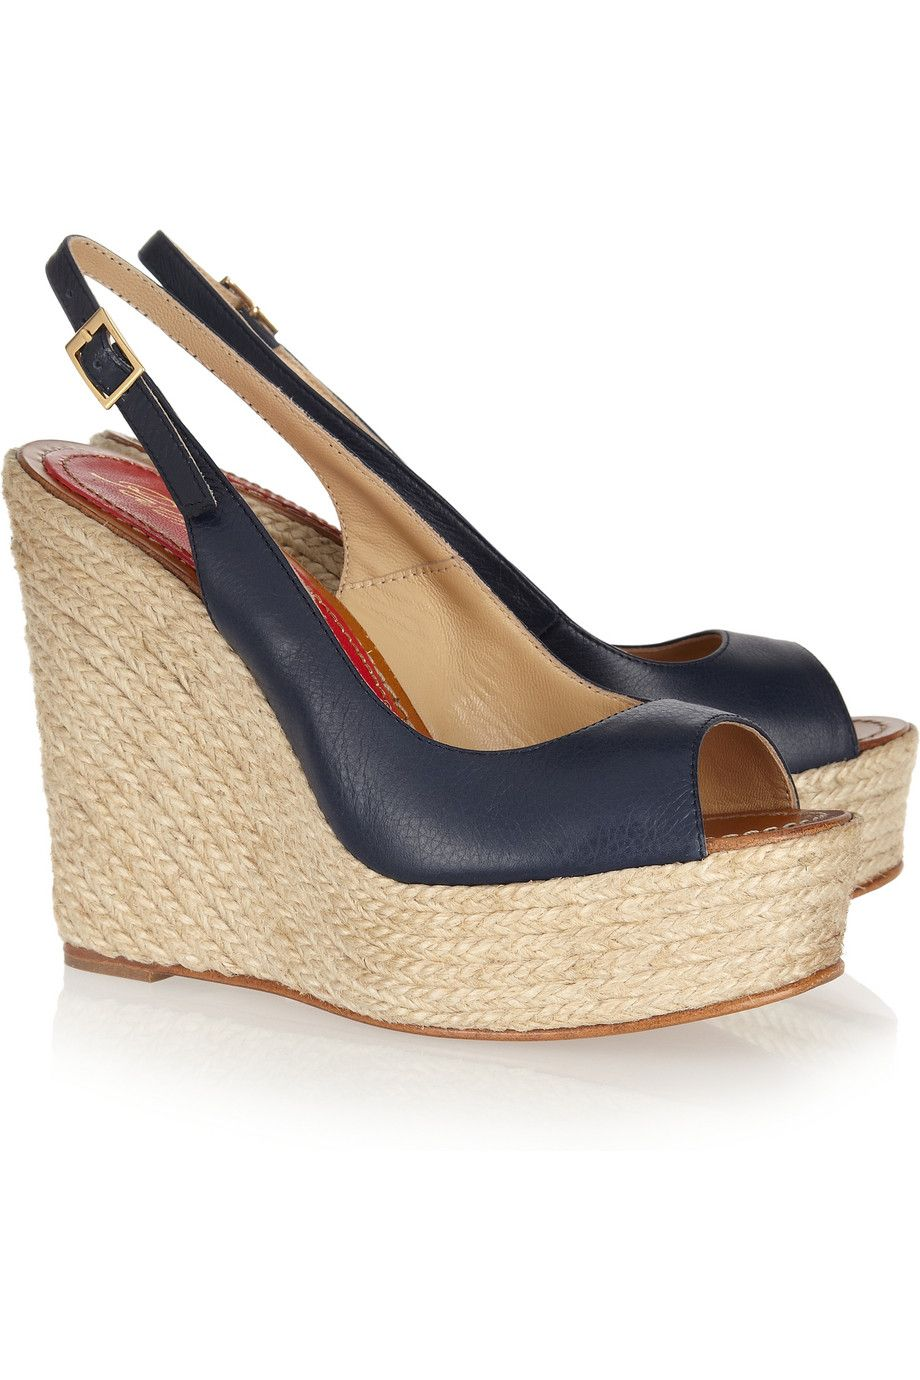 Barceló Wedge Espadrille Paloma Now Leather Sandals At 50Off The cq34Rj5ALS